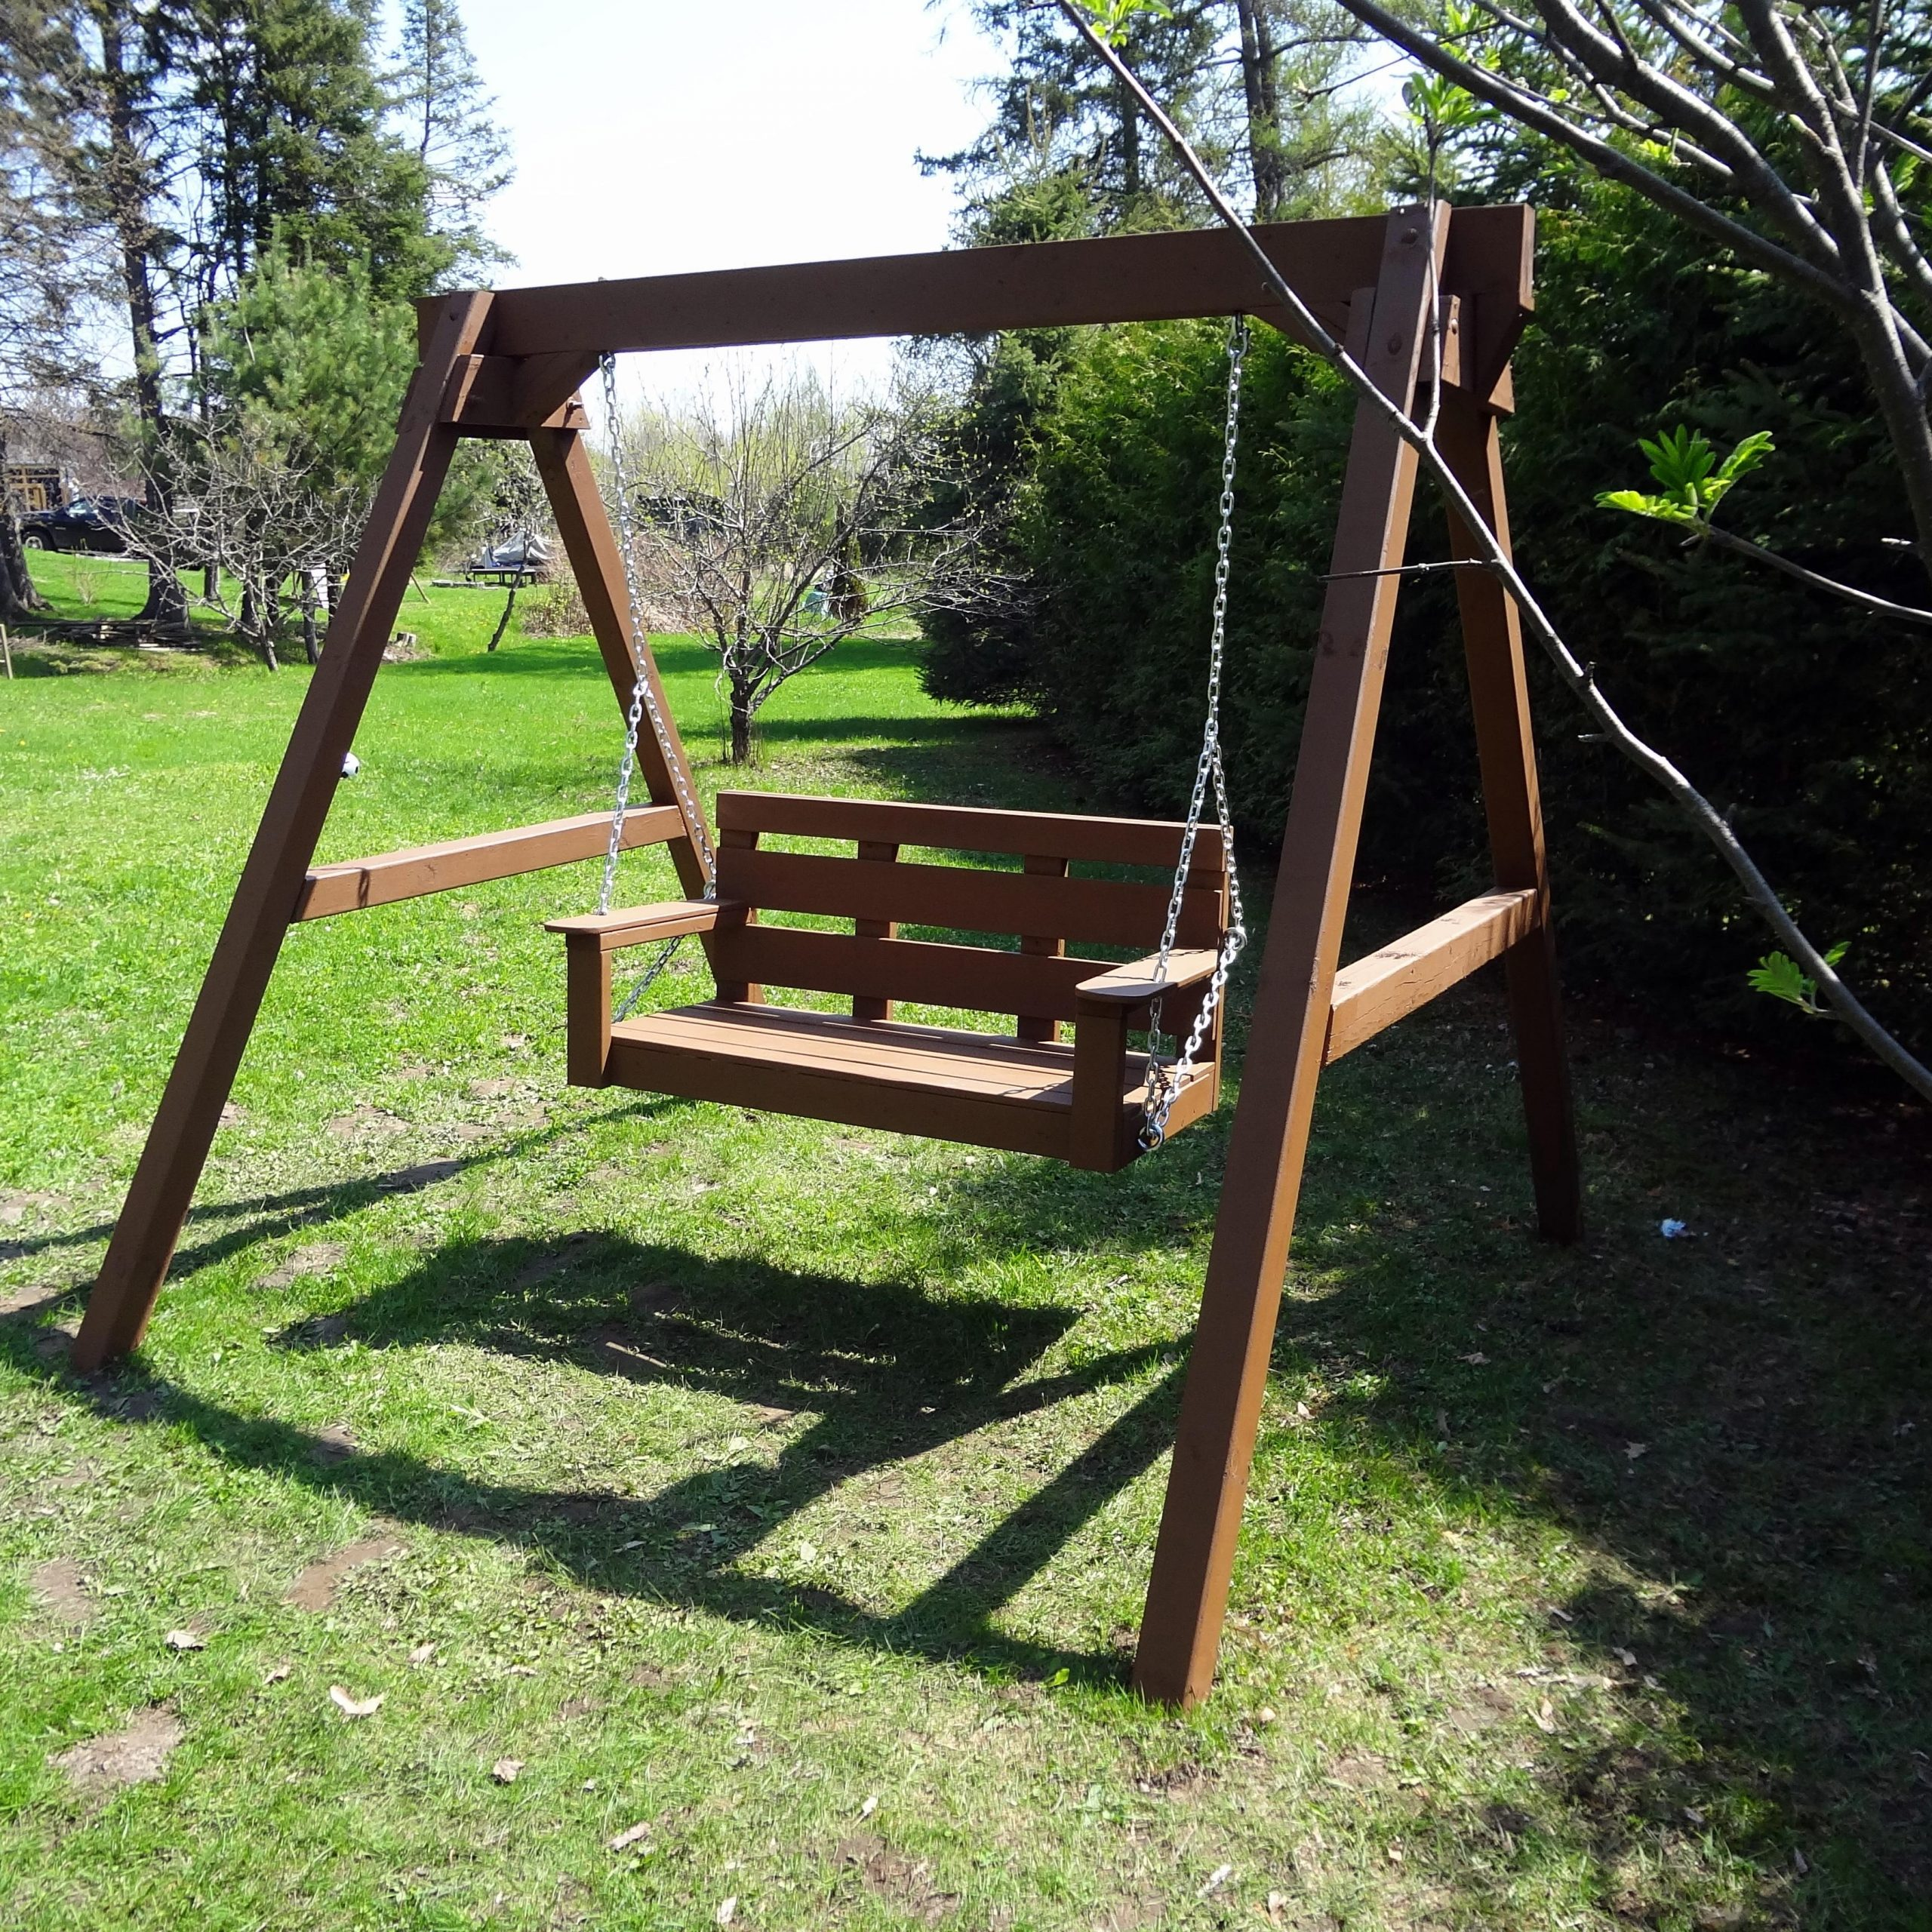 [%56 Diy Porch Swing Plans [free Blueprints] – Mymydiy Pertaining To Newest Daybed Porch Swings With Stand|daybed Porch Swings With Stand Intended For 2020 56 Diy Porch Swing Plans [free Blueprints] – Mymydiy|current Daybed Porch Swings With Stand Pertaining To 56 Diy Porch Swing Plans [free Blueprints] – Mymydiy|well Known 56 Diy Porch Swing Plans [free Blueprints] – Mymydiy For Daybed Porch Swings With Stand%] (View 29 of 30)